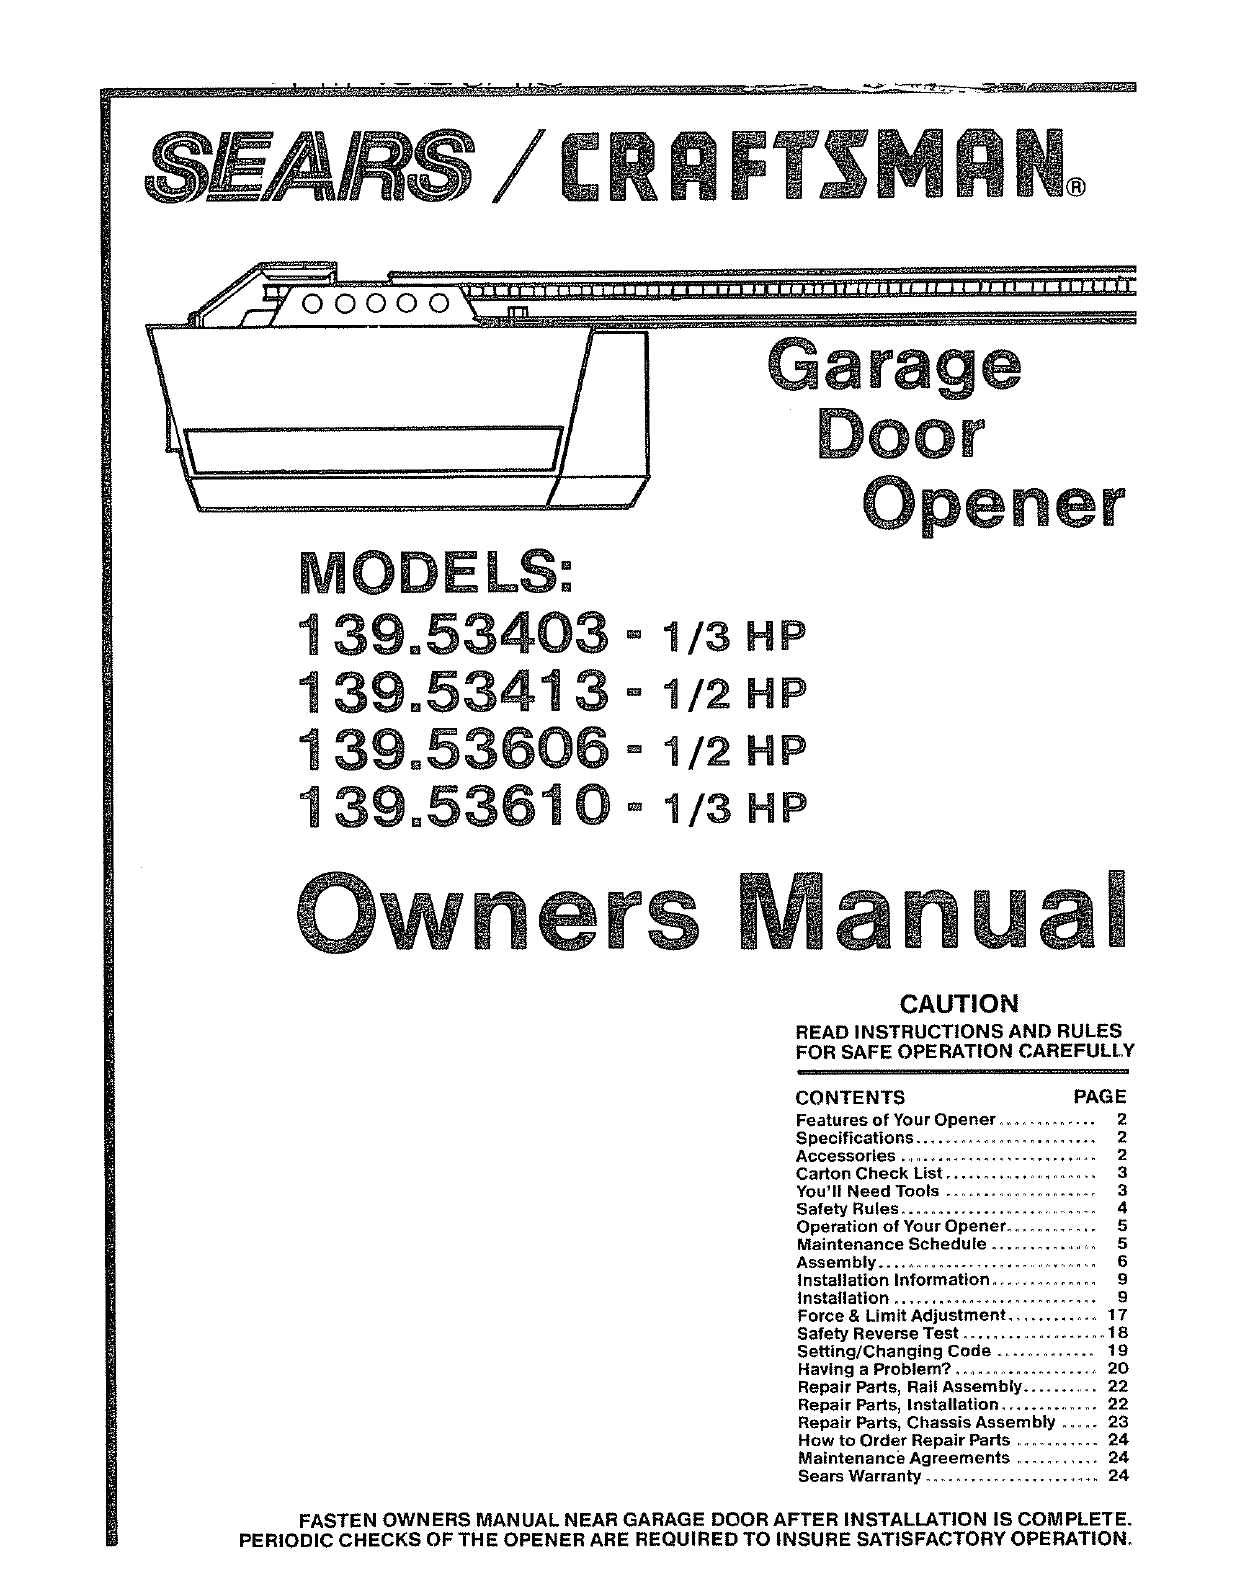 4e24e83f 95d3 4892 ae01 8deb09c598a8 bg1 craftsman garage door opener 139 53403 user guide manualsonline com Chamberlain Garage Door Opener Wiring- Diagram at reclaimingppi.co